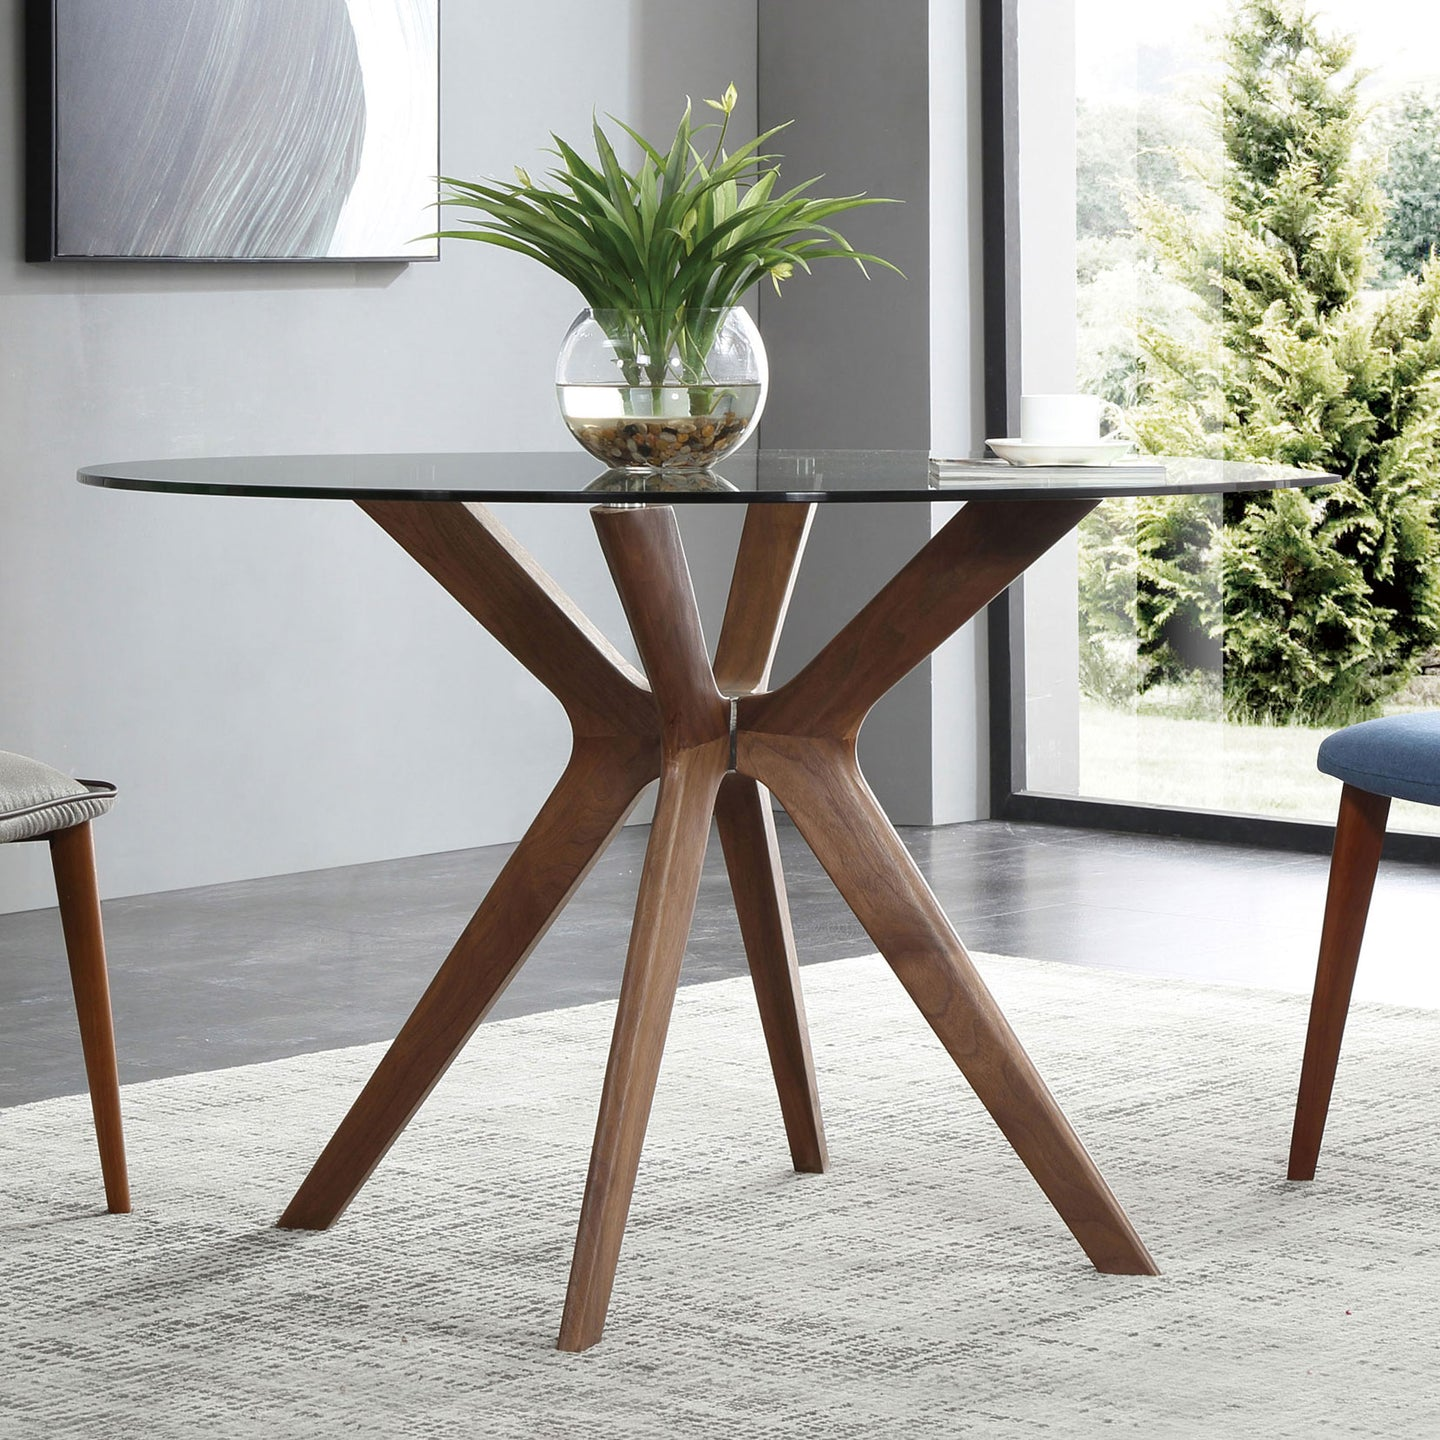 Branch - Round Glass Table with Wood Legs